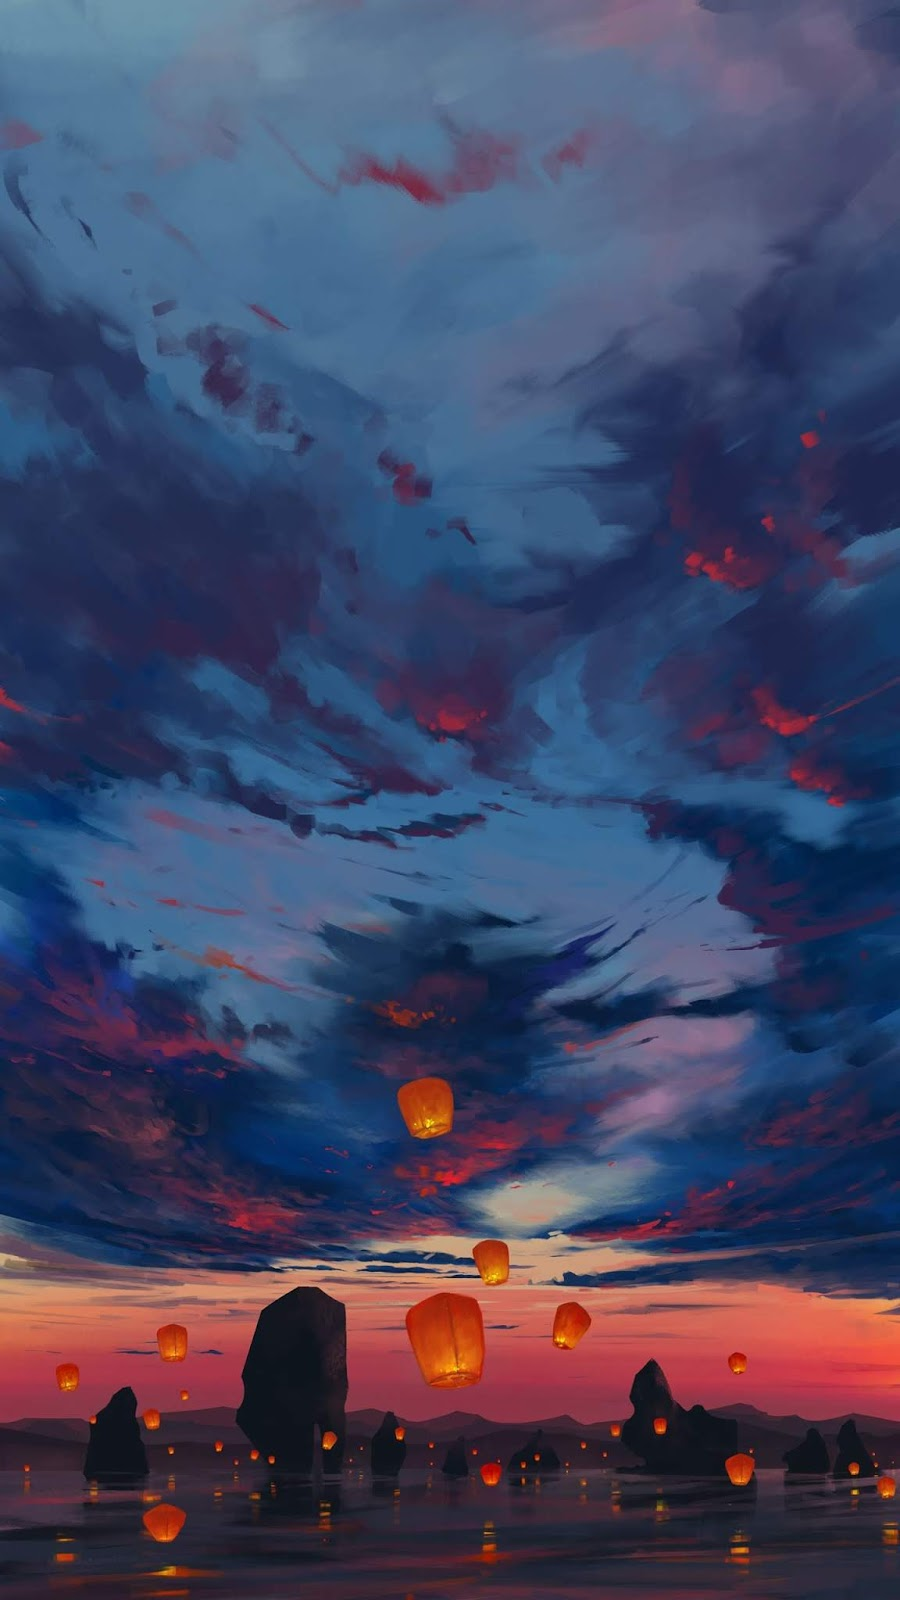 Lantern in the sunset wallpaper